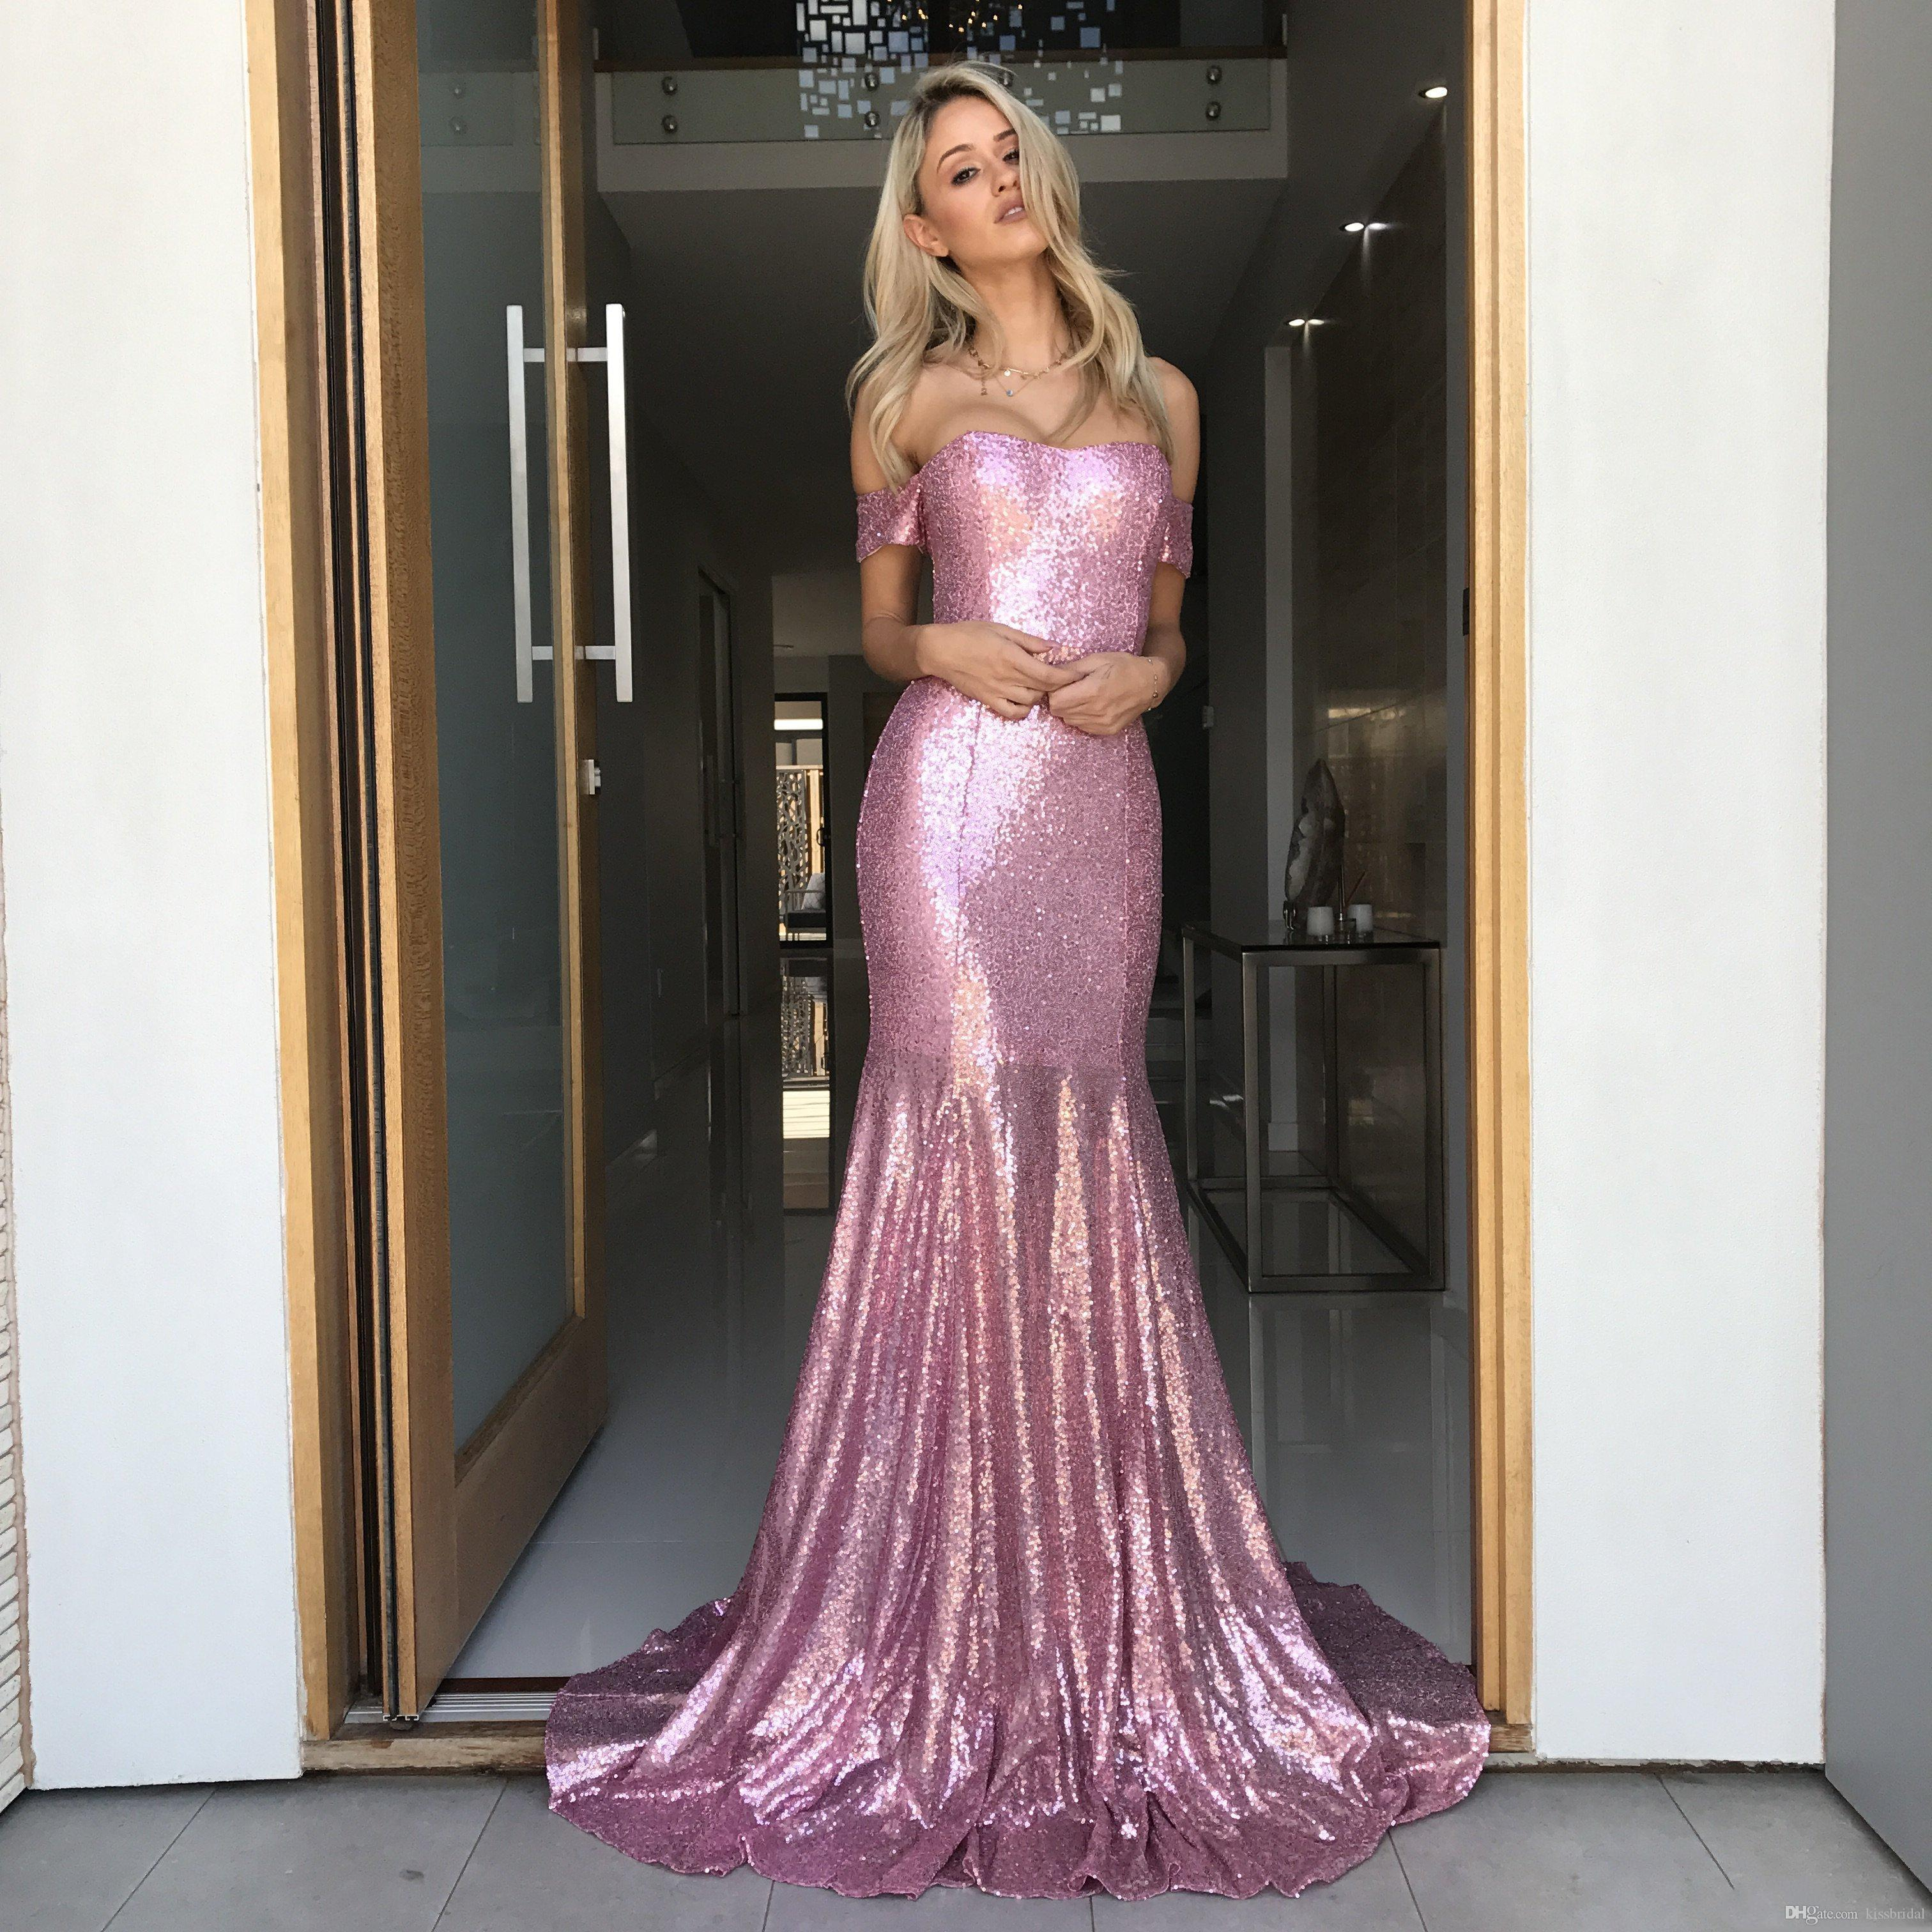 f0e4fe86 Cheap Sequin Prom Dresses 2019 Mermaid Off The Shoulder Pink Appliques Evening  Gowns Cocktail Party Ball Bridesmaid Dress Formal Gown Xo Prom Dresses  Design ...